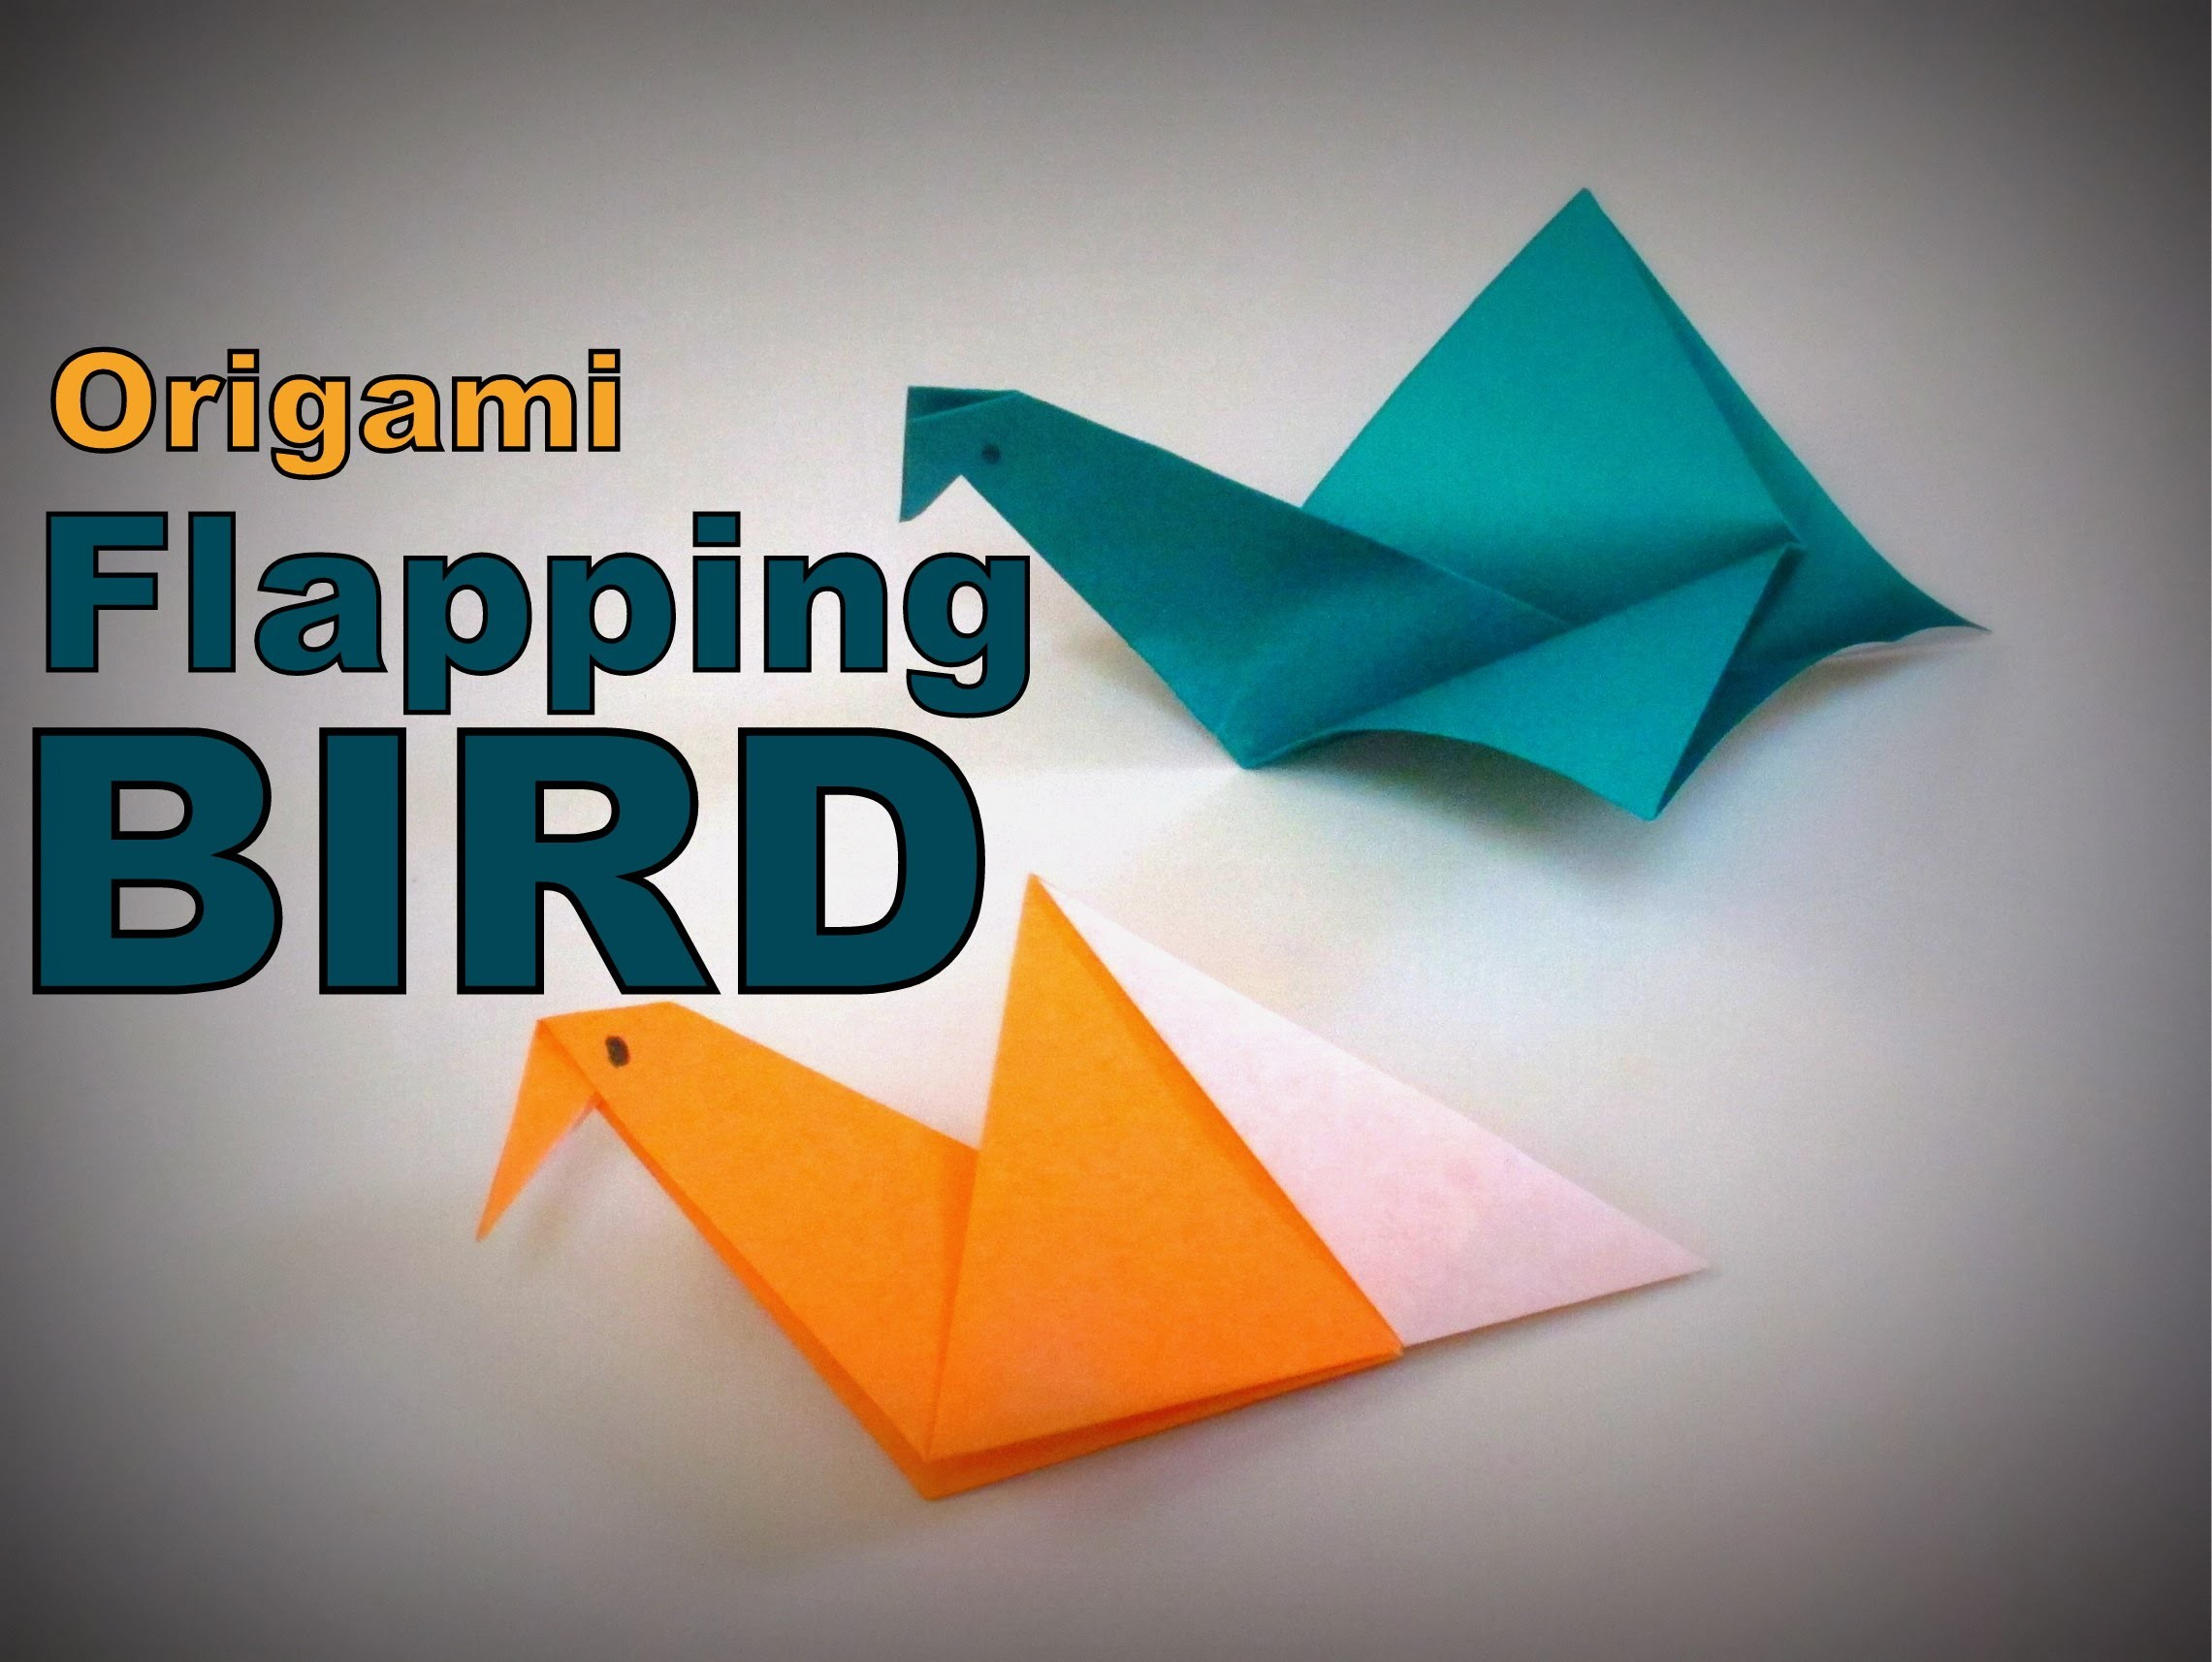 Origami - How to make a Flapping BIRD